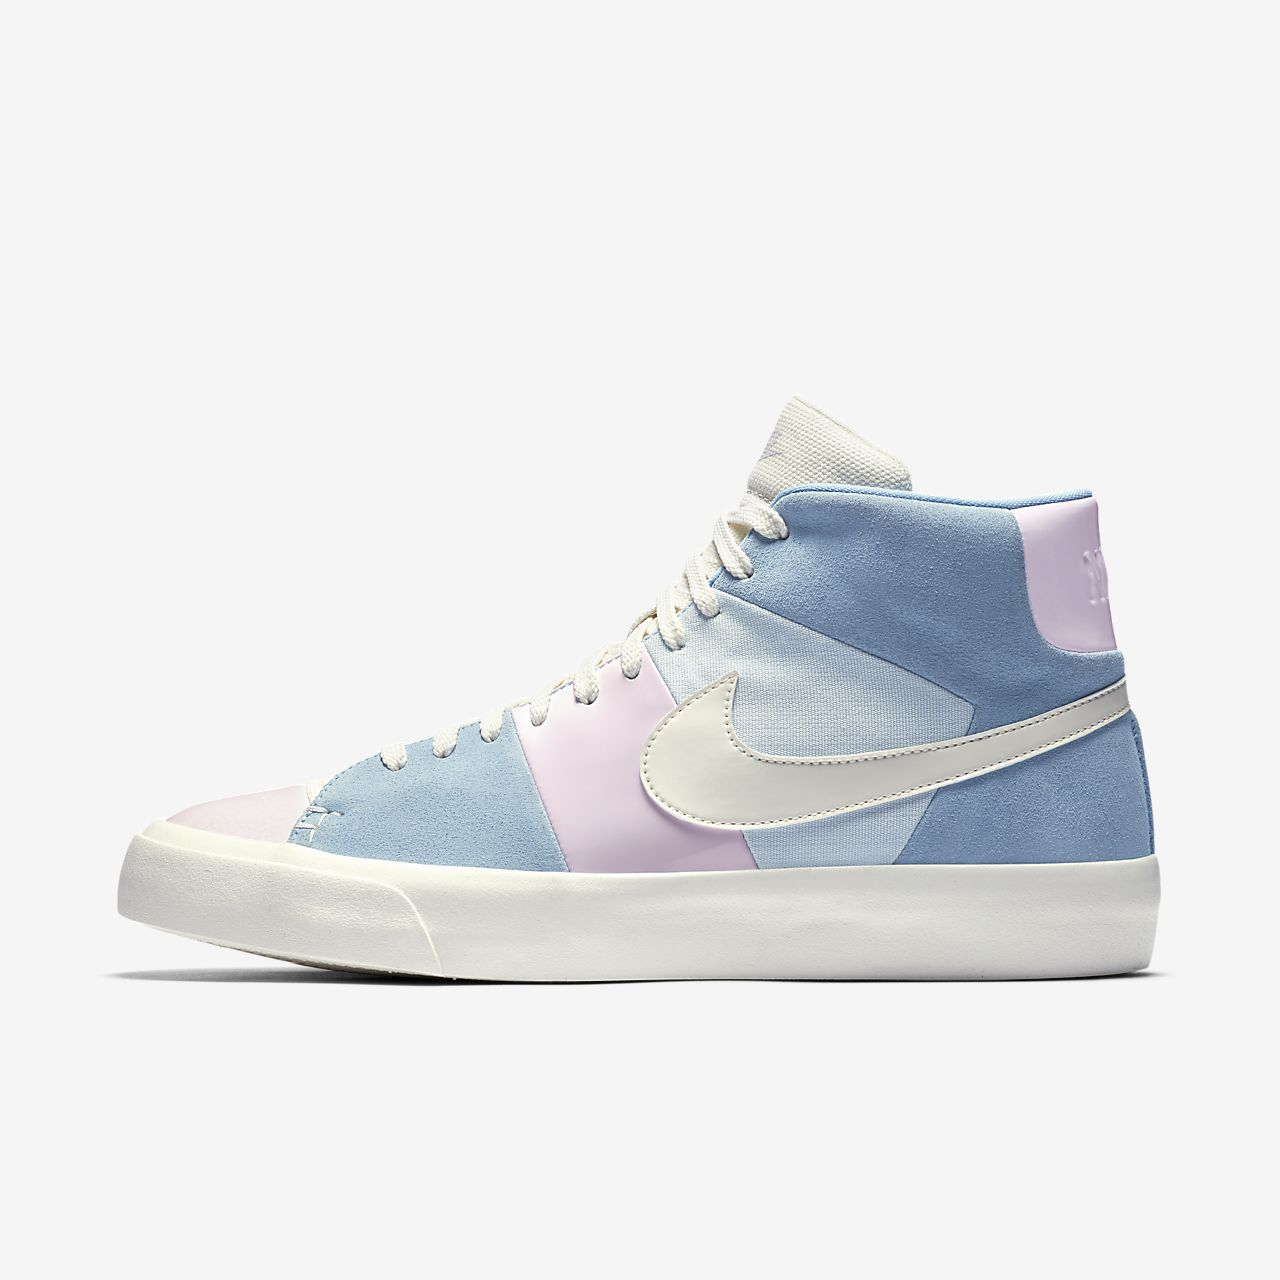 new arrivals 14301 865b8 ... Nike Blazer Royal Easter QS Men s Shoe